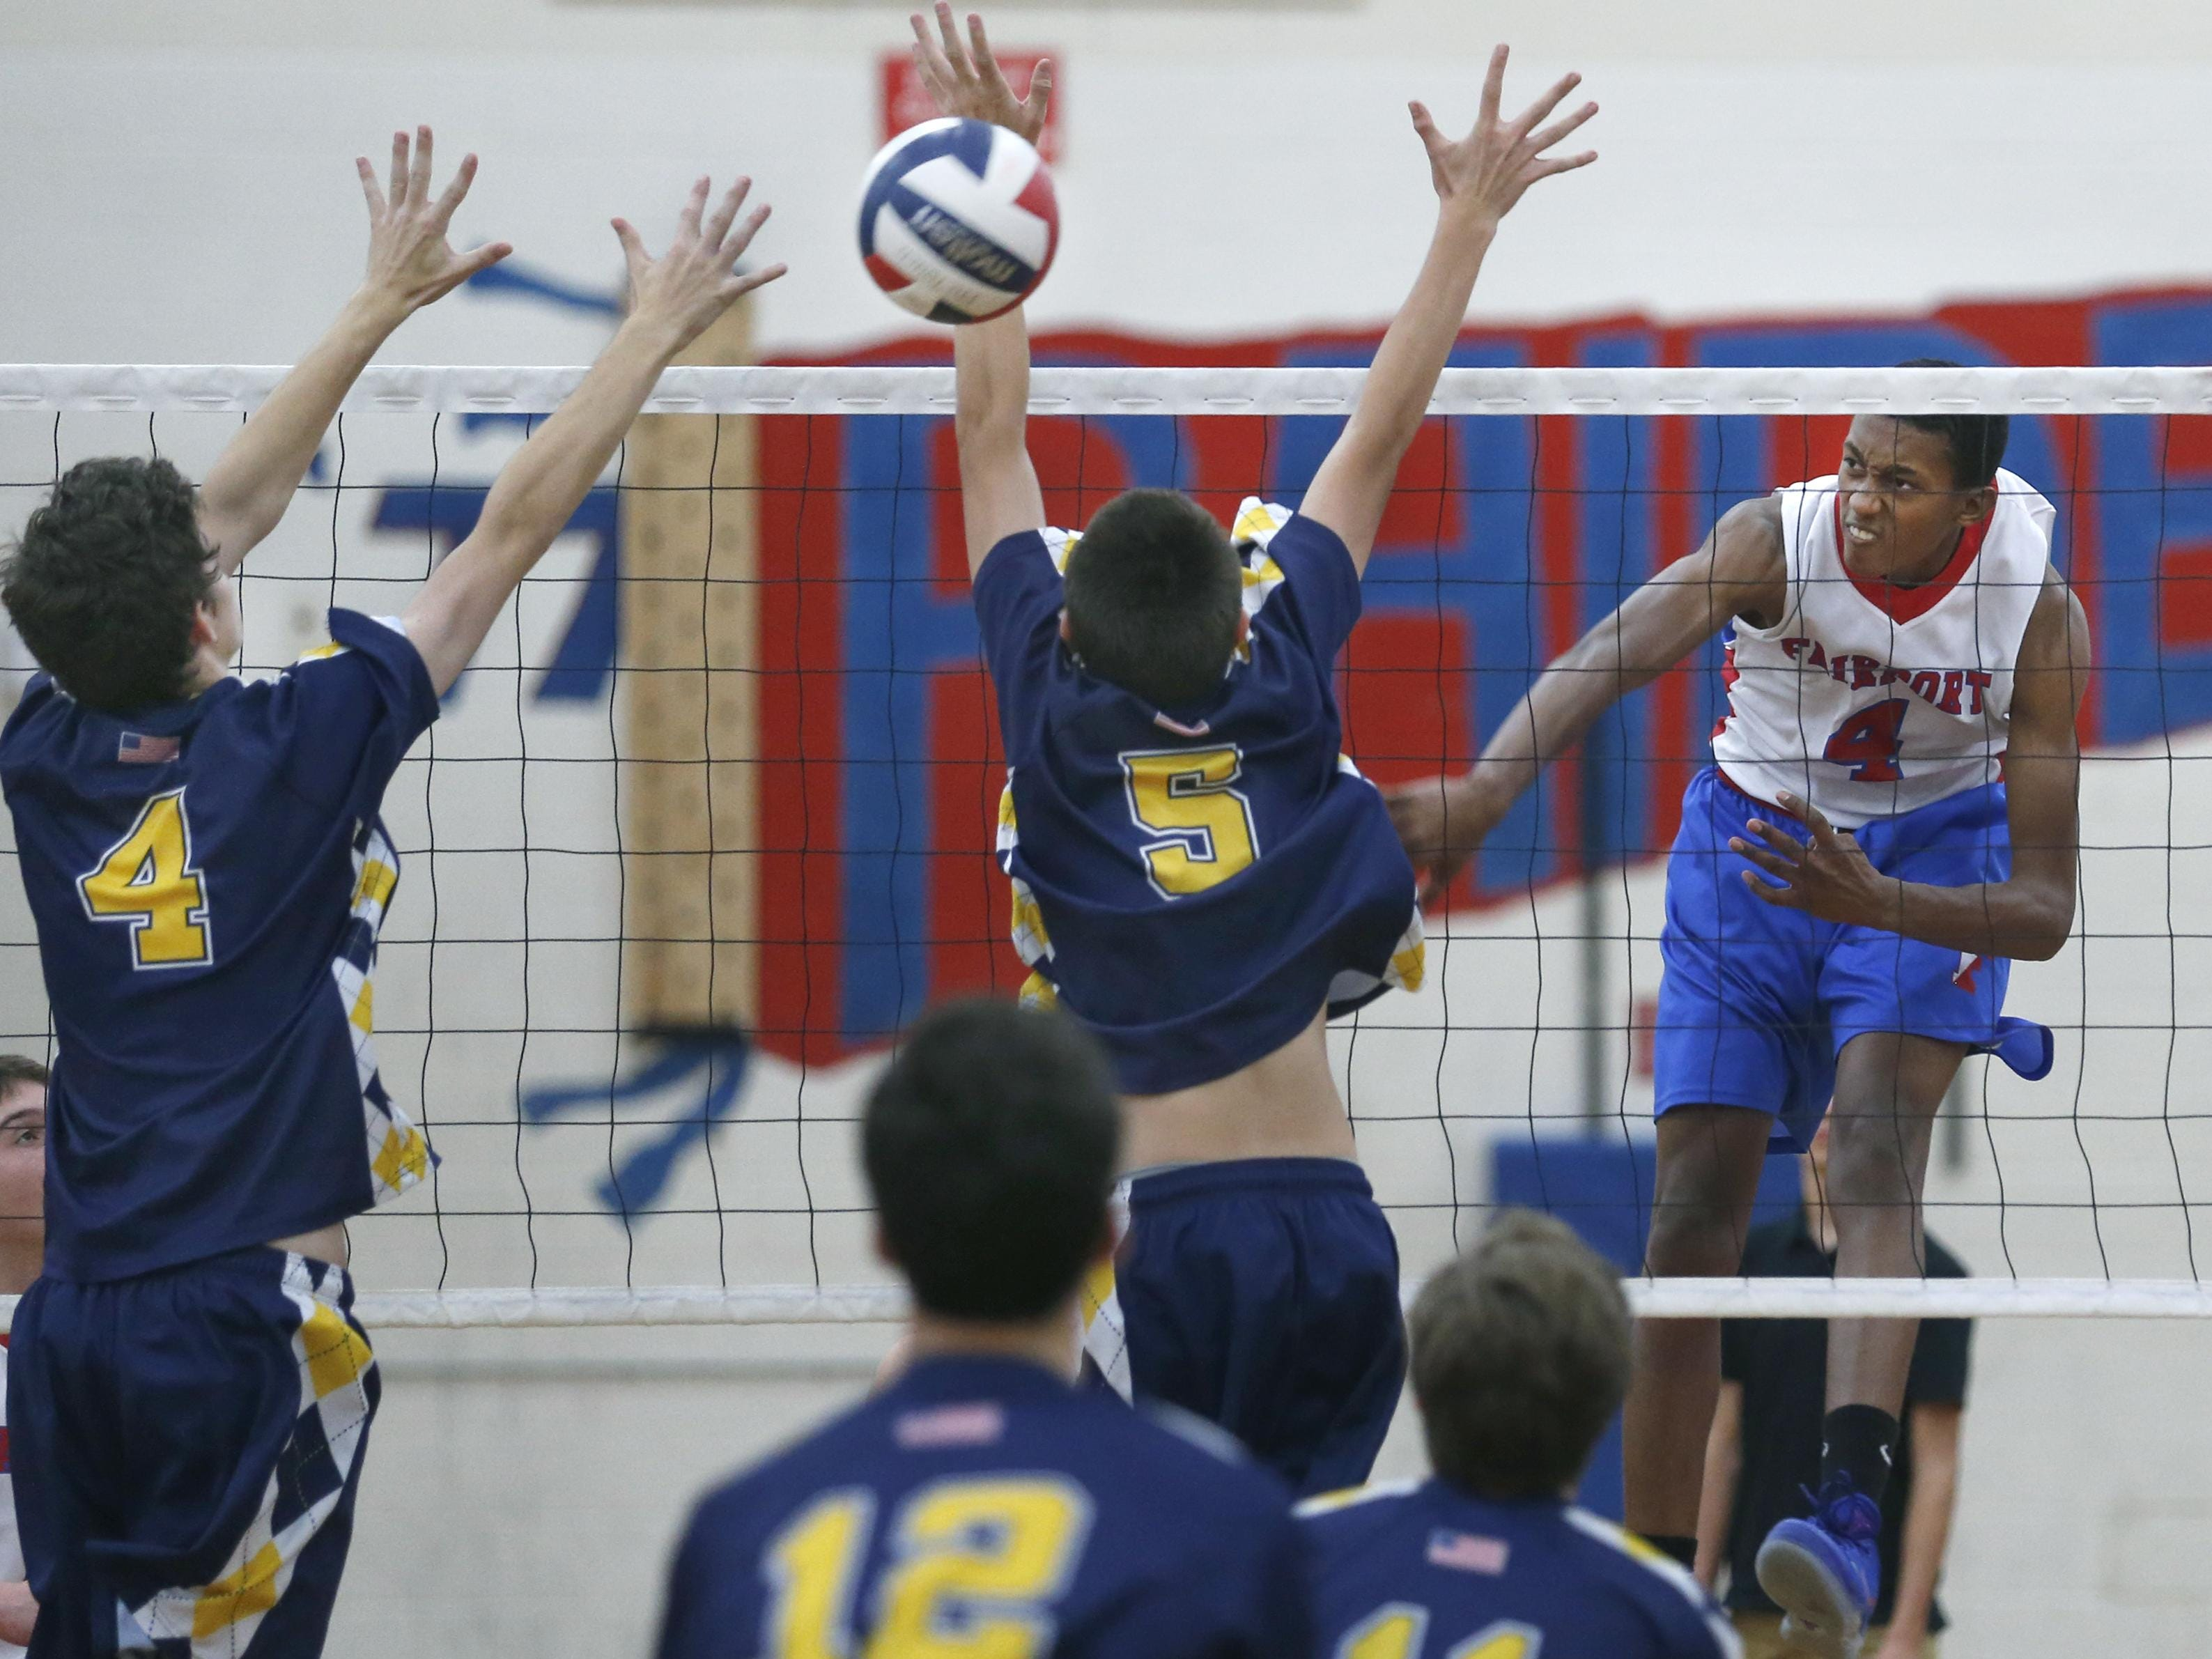 Fairport's Donovan Dey attacks against Victor's Hayden Hall and Cam Clark in the second set at Fairport High School. Fairport won in three sets.